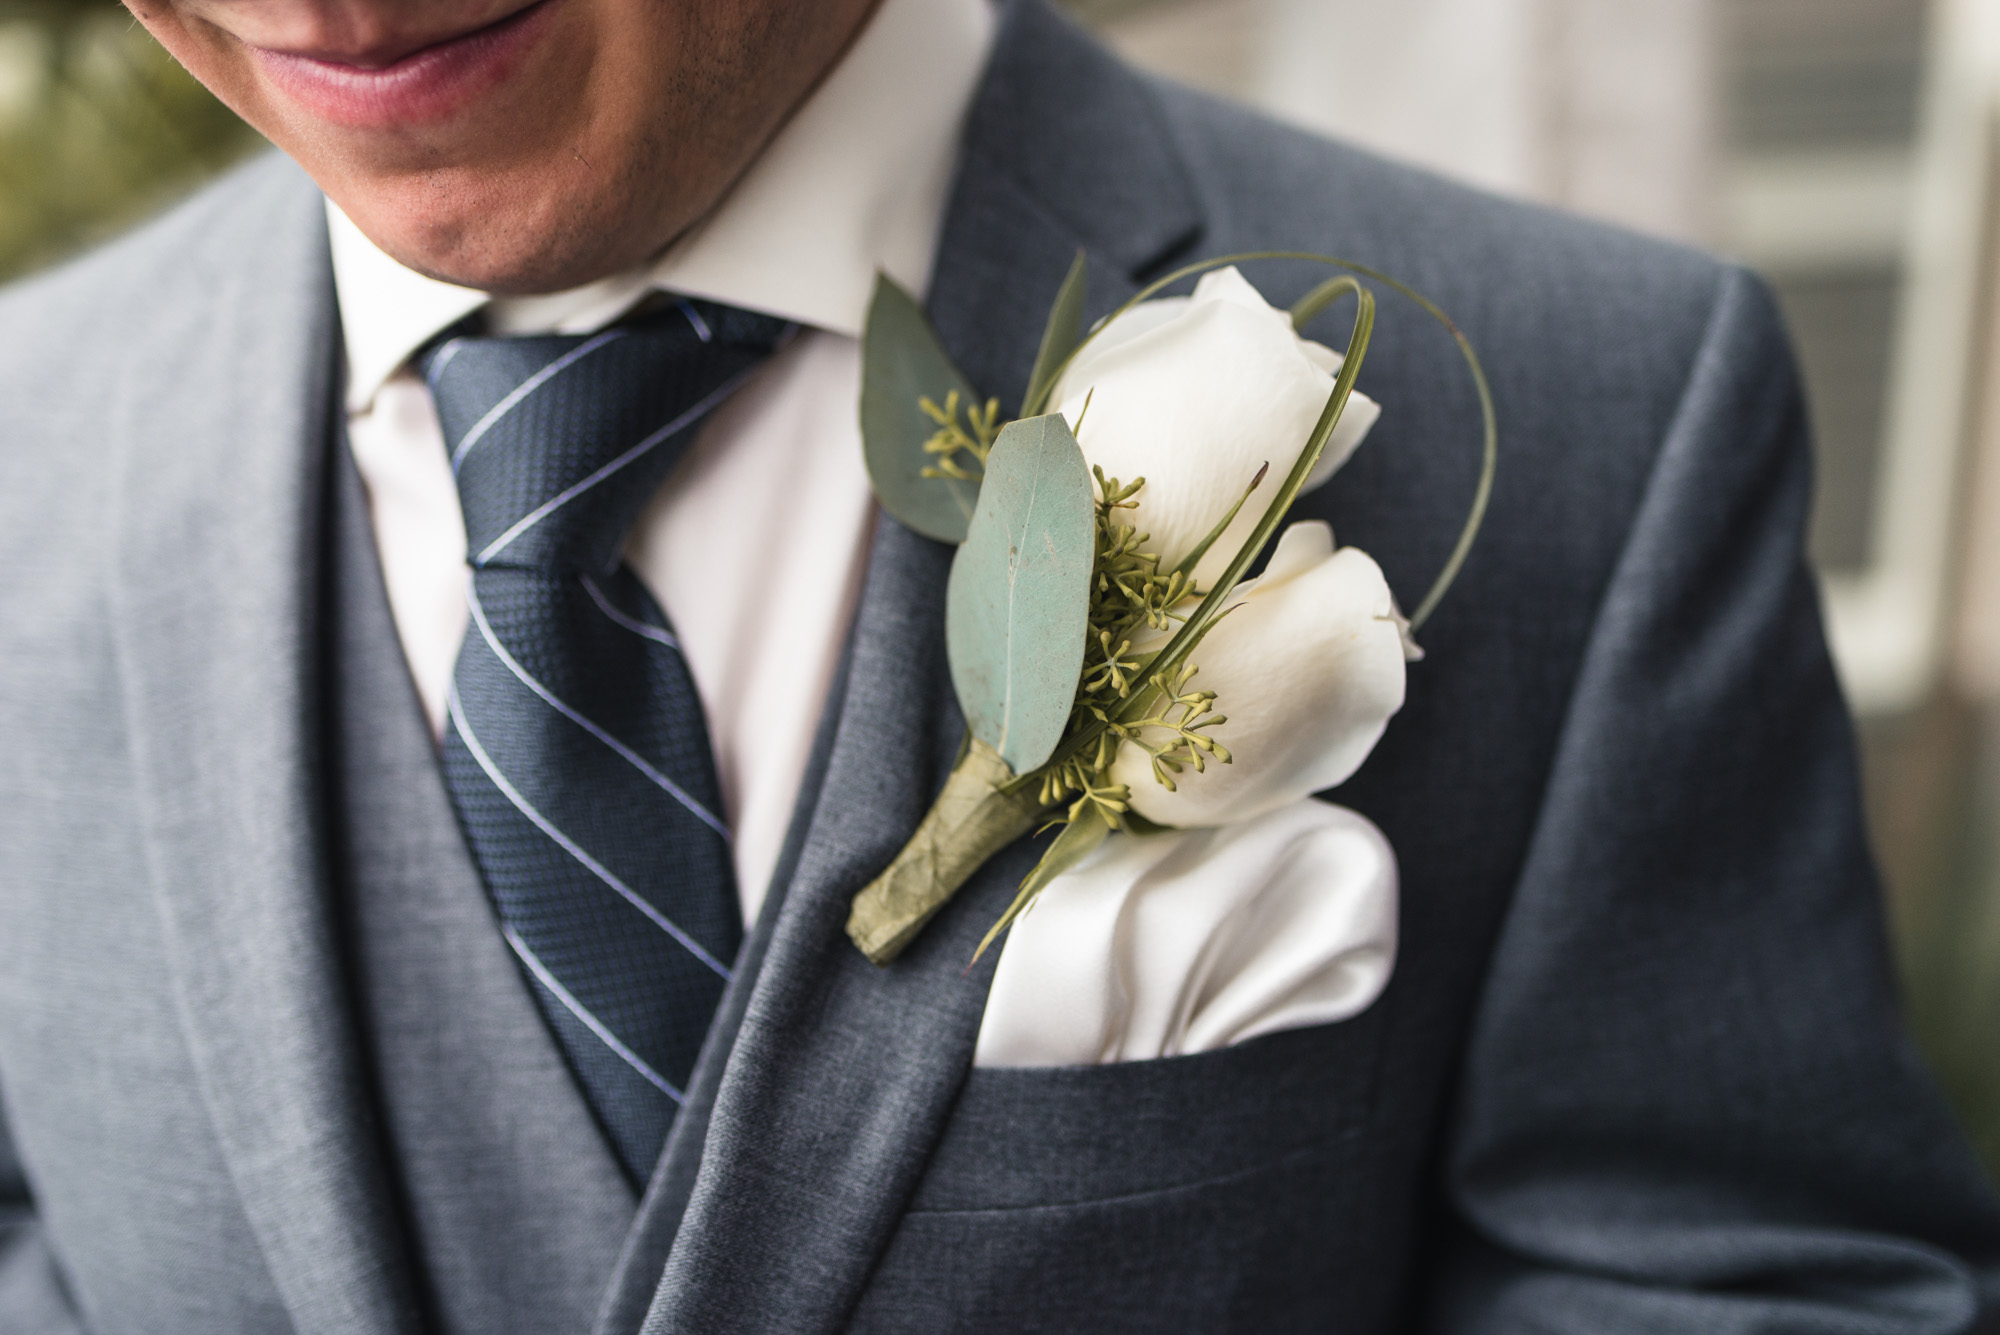 Groom's clothing details